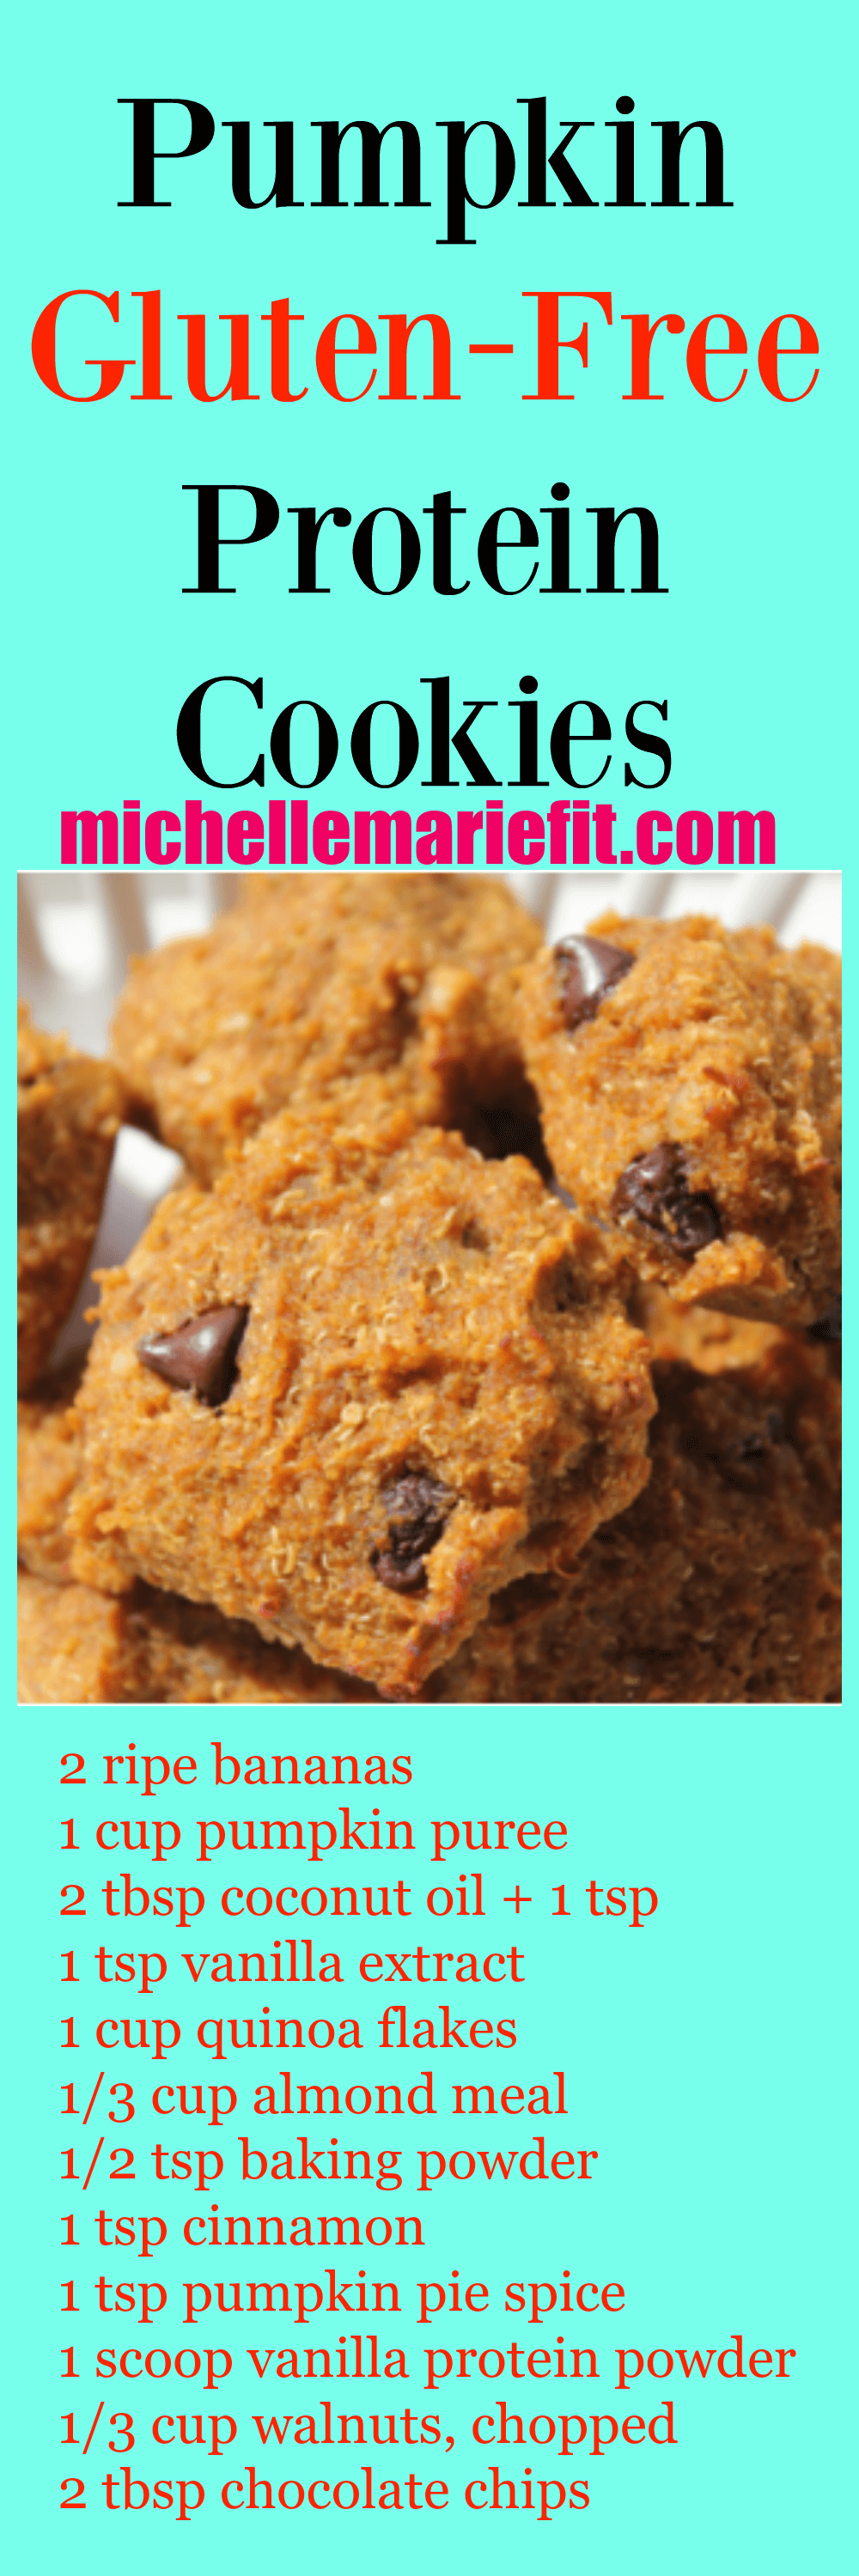 ... Recipe For Gluten-Free Pumpkin Protein Cookies - Michelle Marie Fit